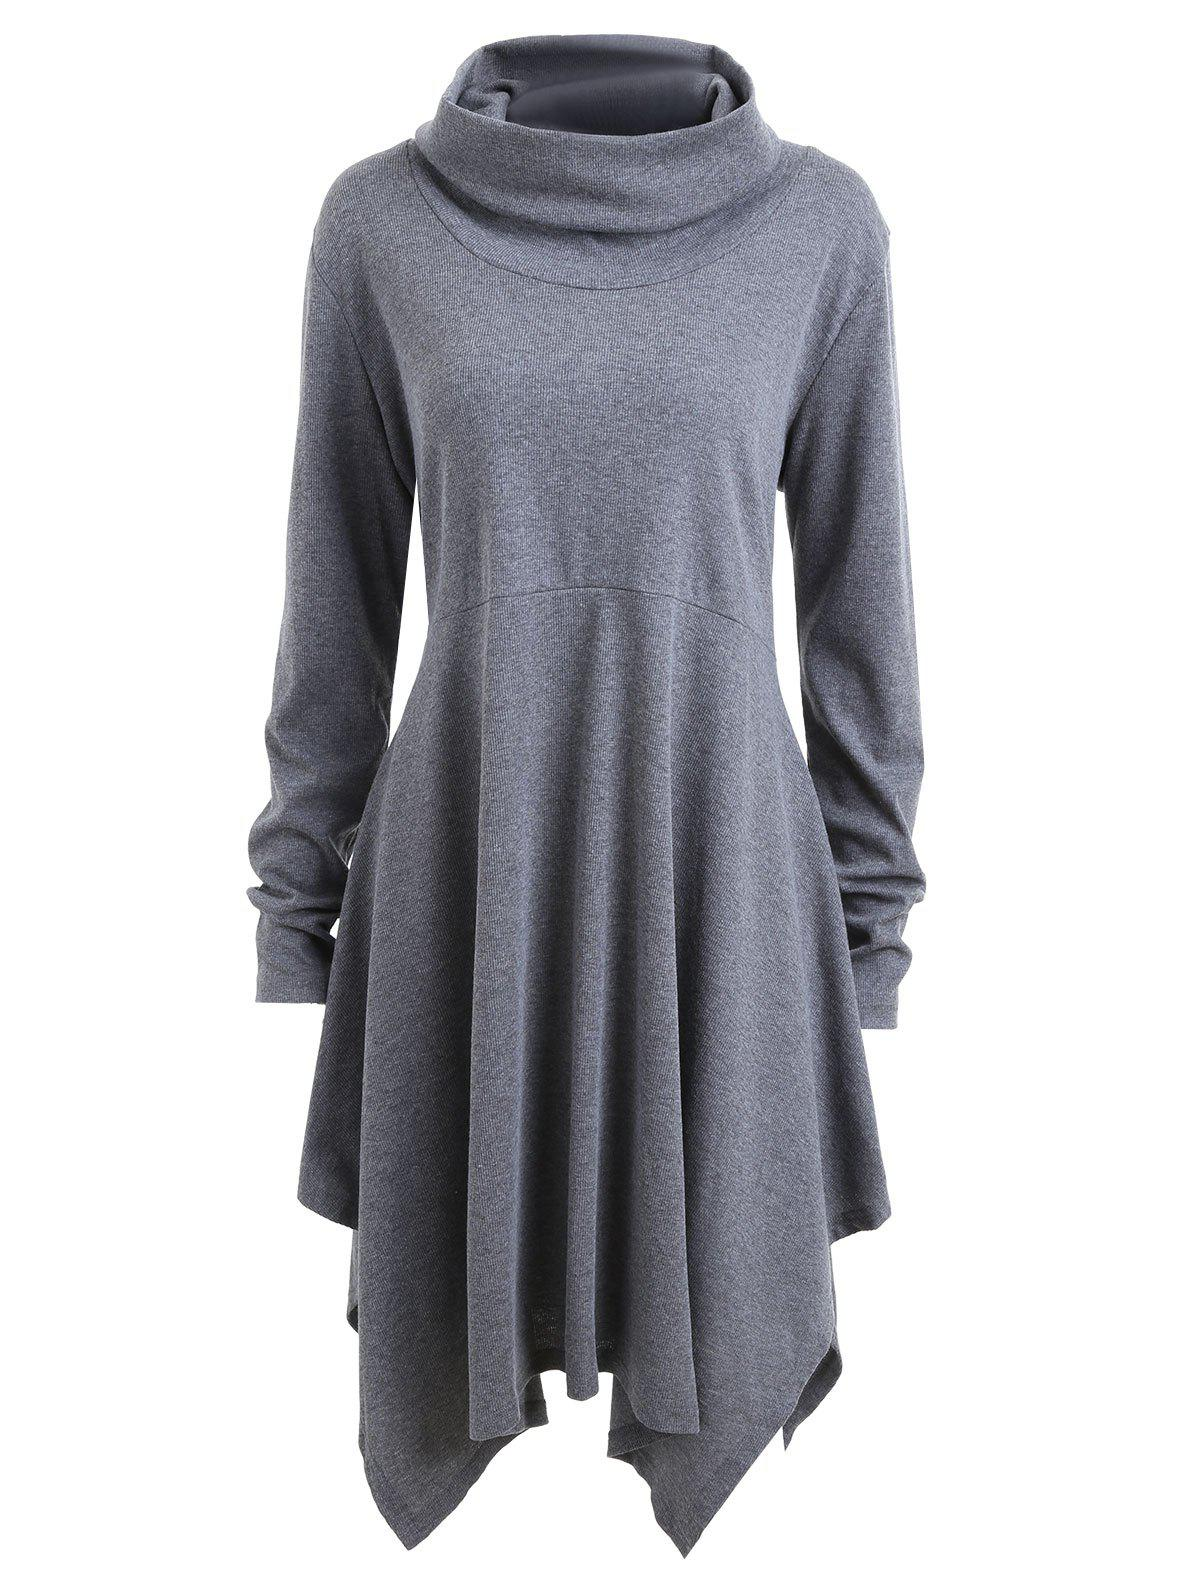 Plus Size Long Sleeve Funnel Neck Swing DressWOMEN<br><br>Size: 2XL; Color: GRAY; Style: Casual; Material: Polyester; Silhouette: A-Line; Dresses Length: Knee-Length; Neckline: Funnel Collar; Sleeve Length: Long Sleeves; Pattern Type: Solid,Solid Color; With Belt: No; Season: Fall,Winter; Weight: 0.5000kg; Package Contents: 1 x Dress;